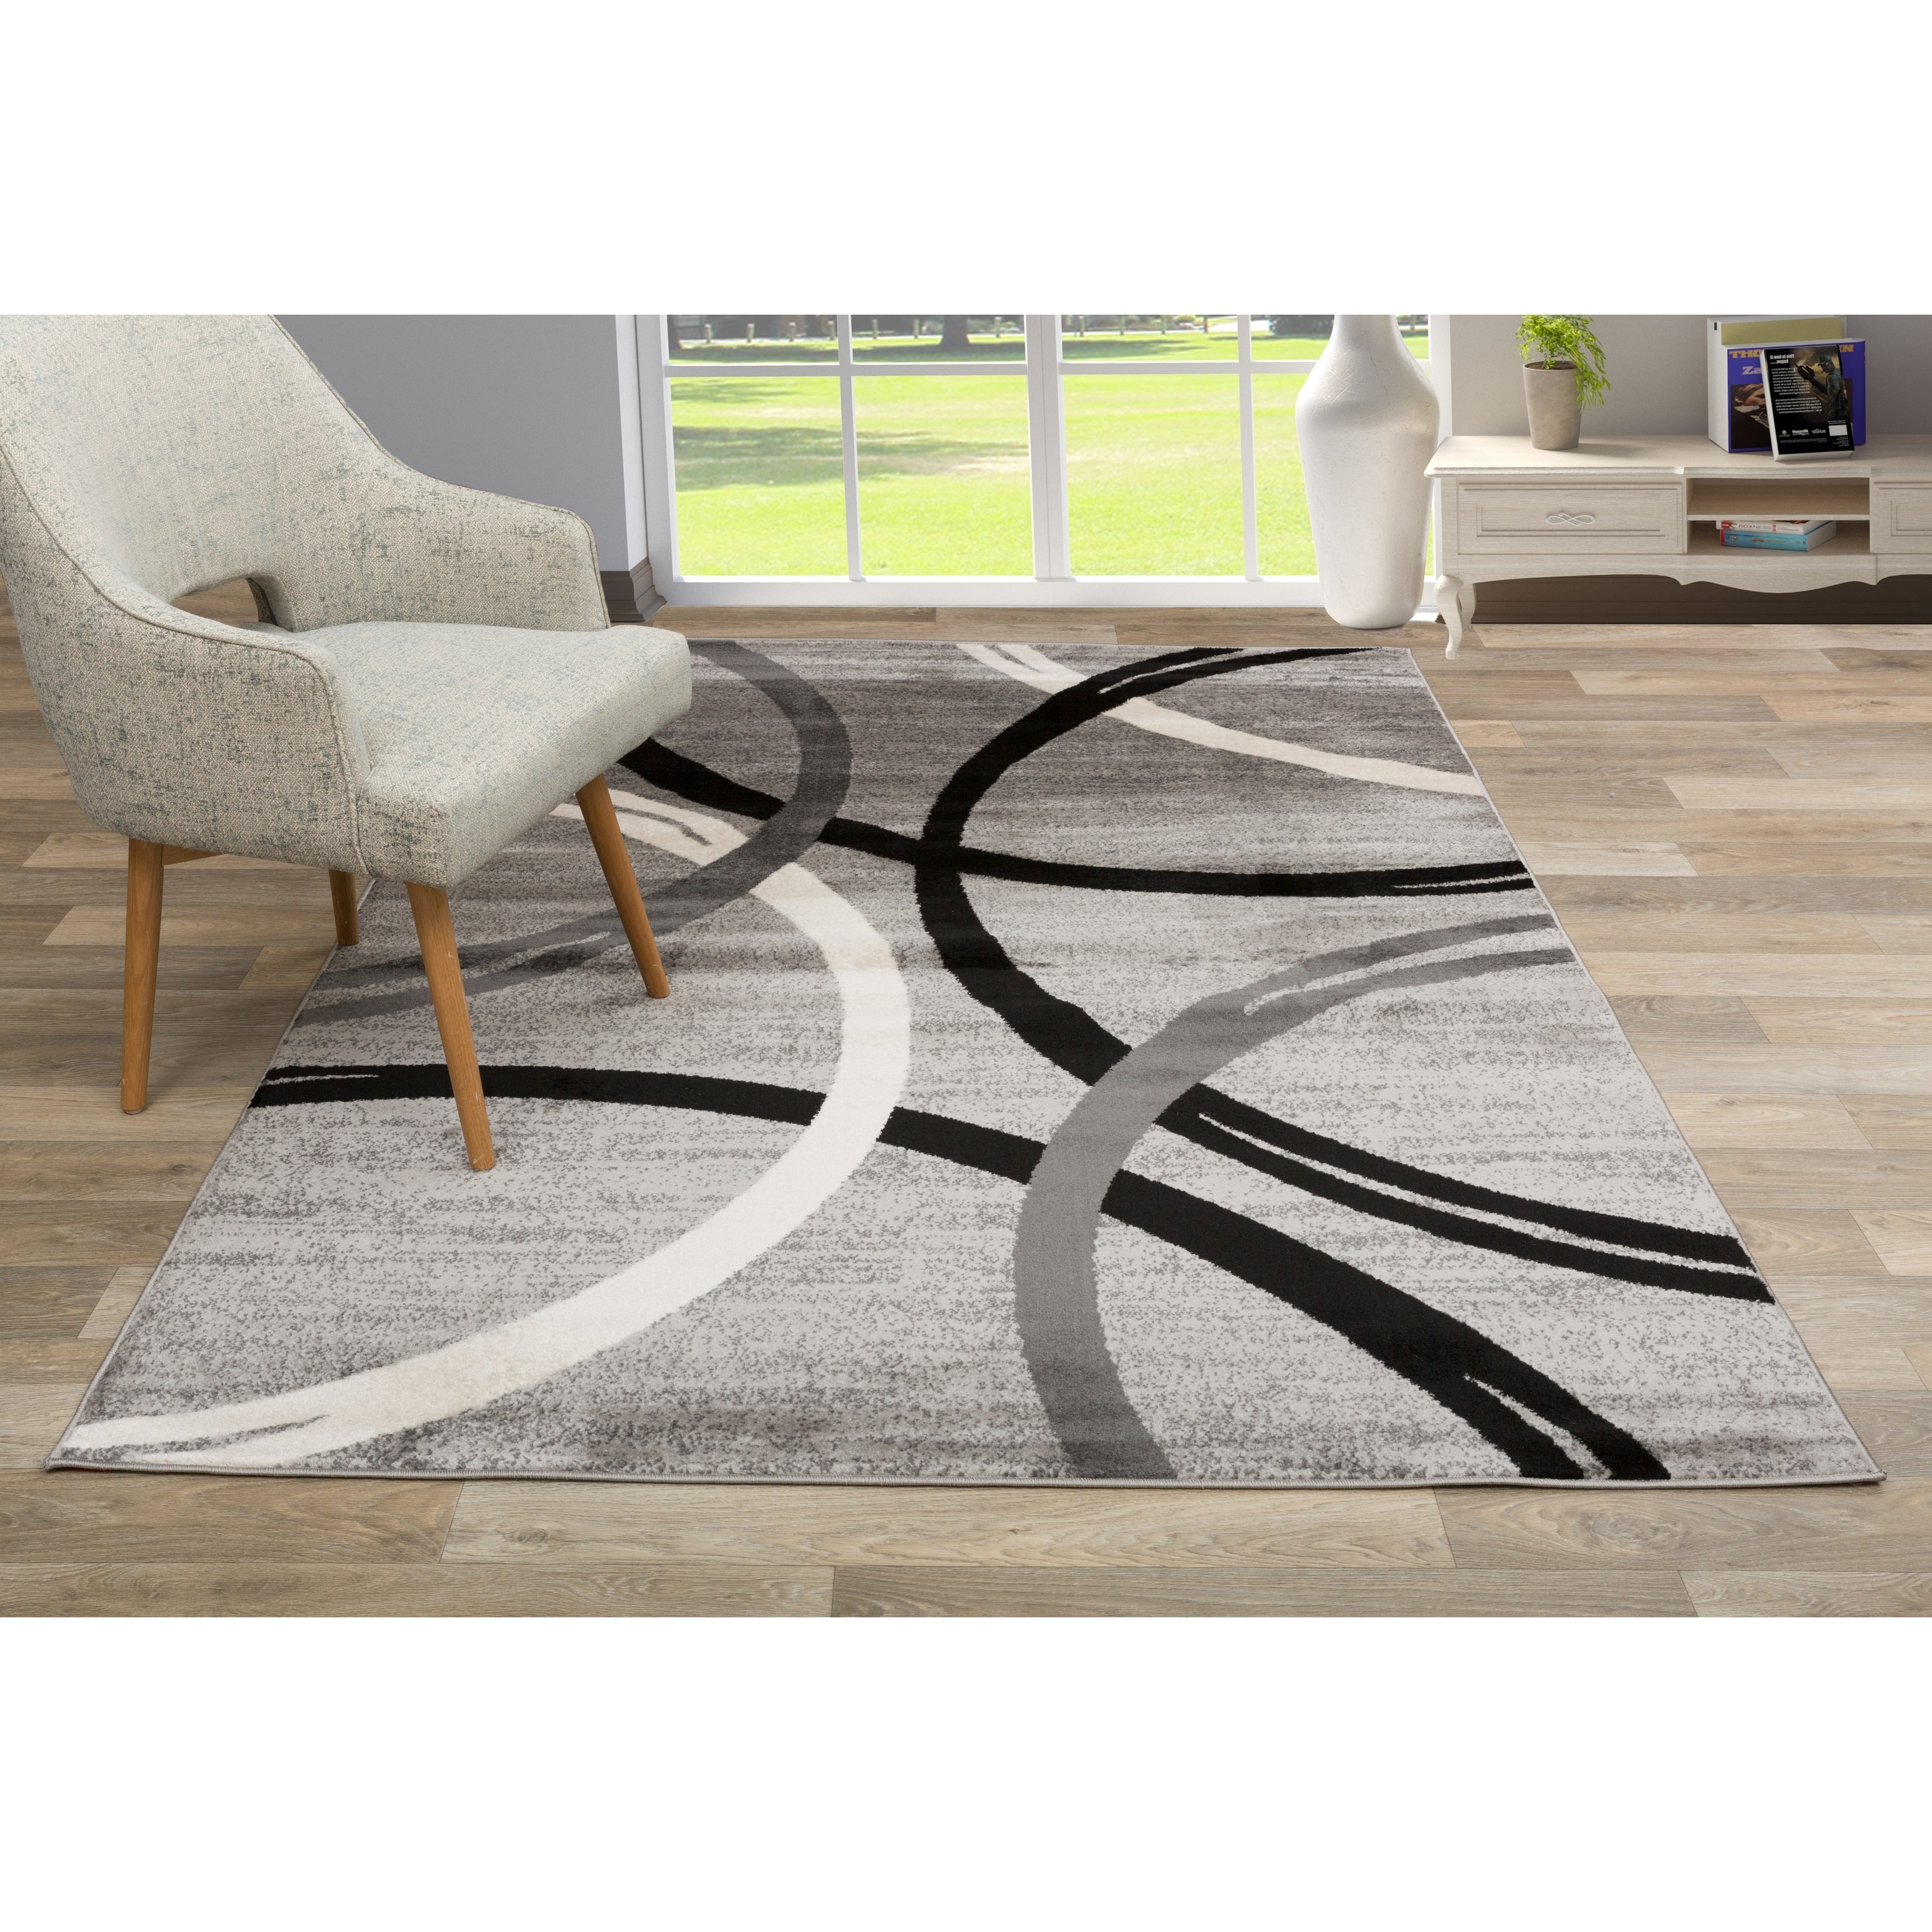 Contemporary Abstract Circles Design Area Rug Gray 5 3 X 7 3